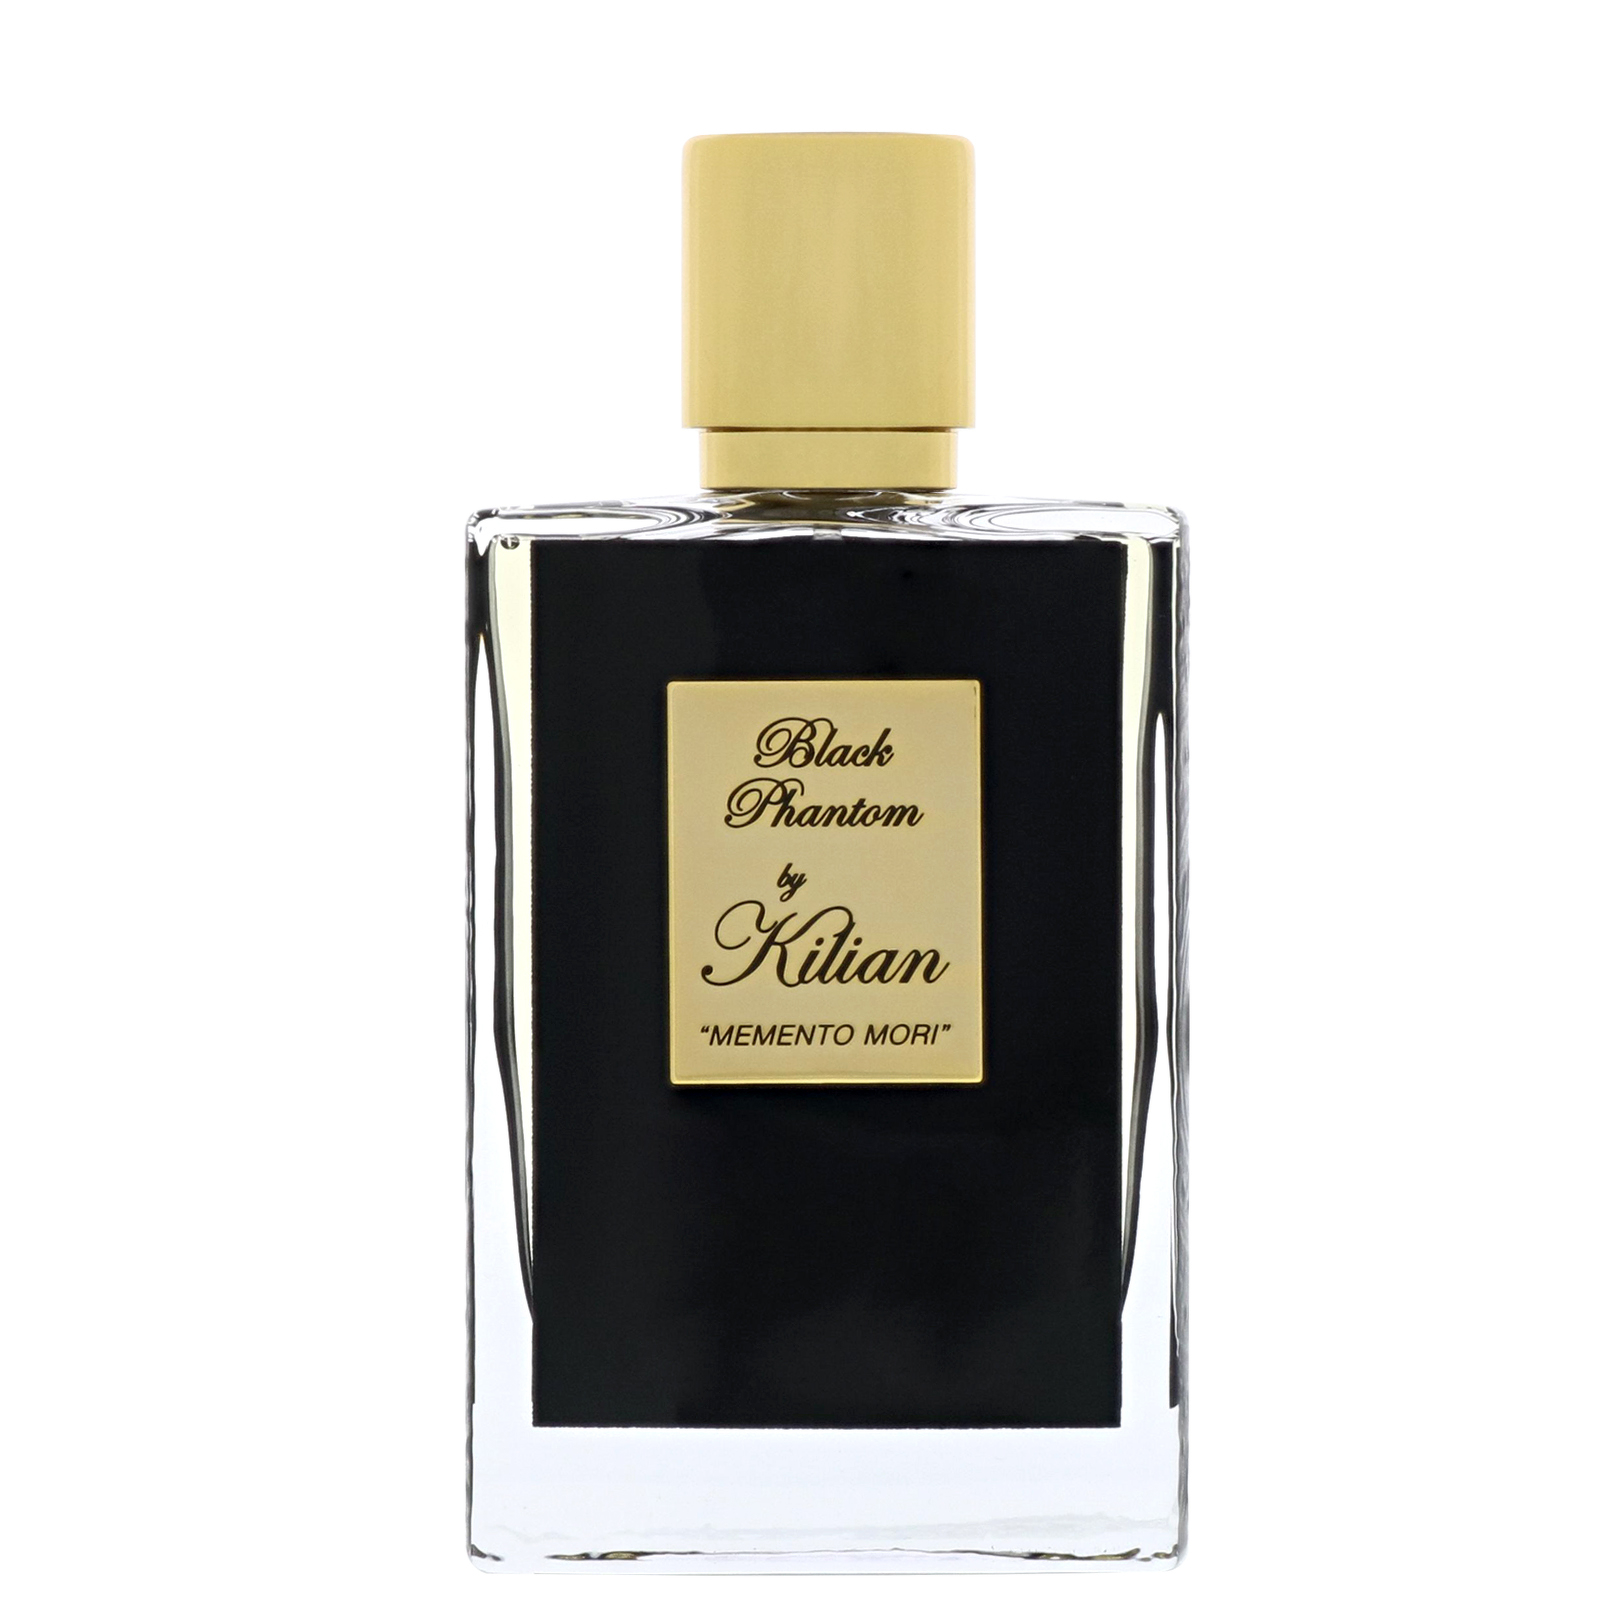 "Kilian Black Phantom ""Memento Mori"" Eau de Parfum Refillable Spray 50ml"